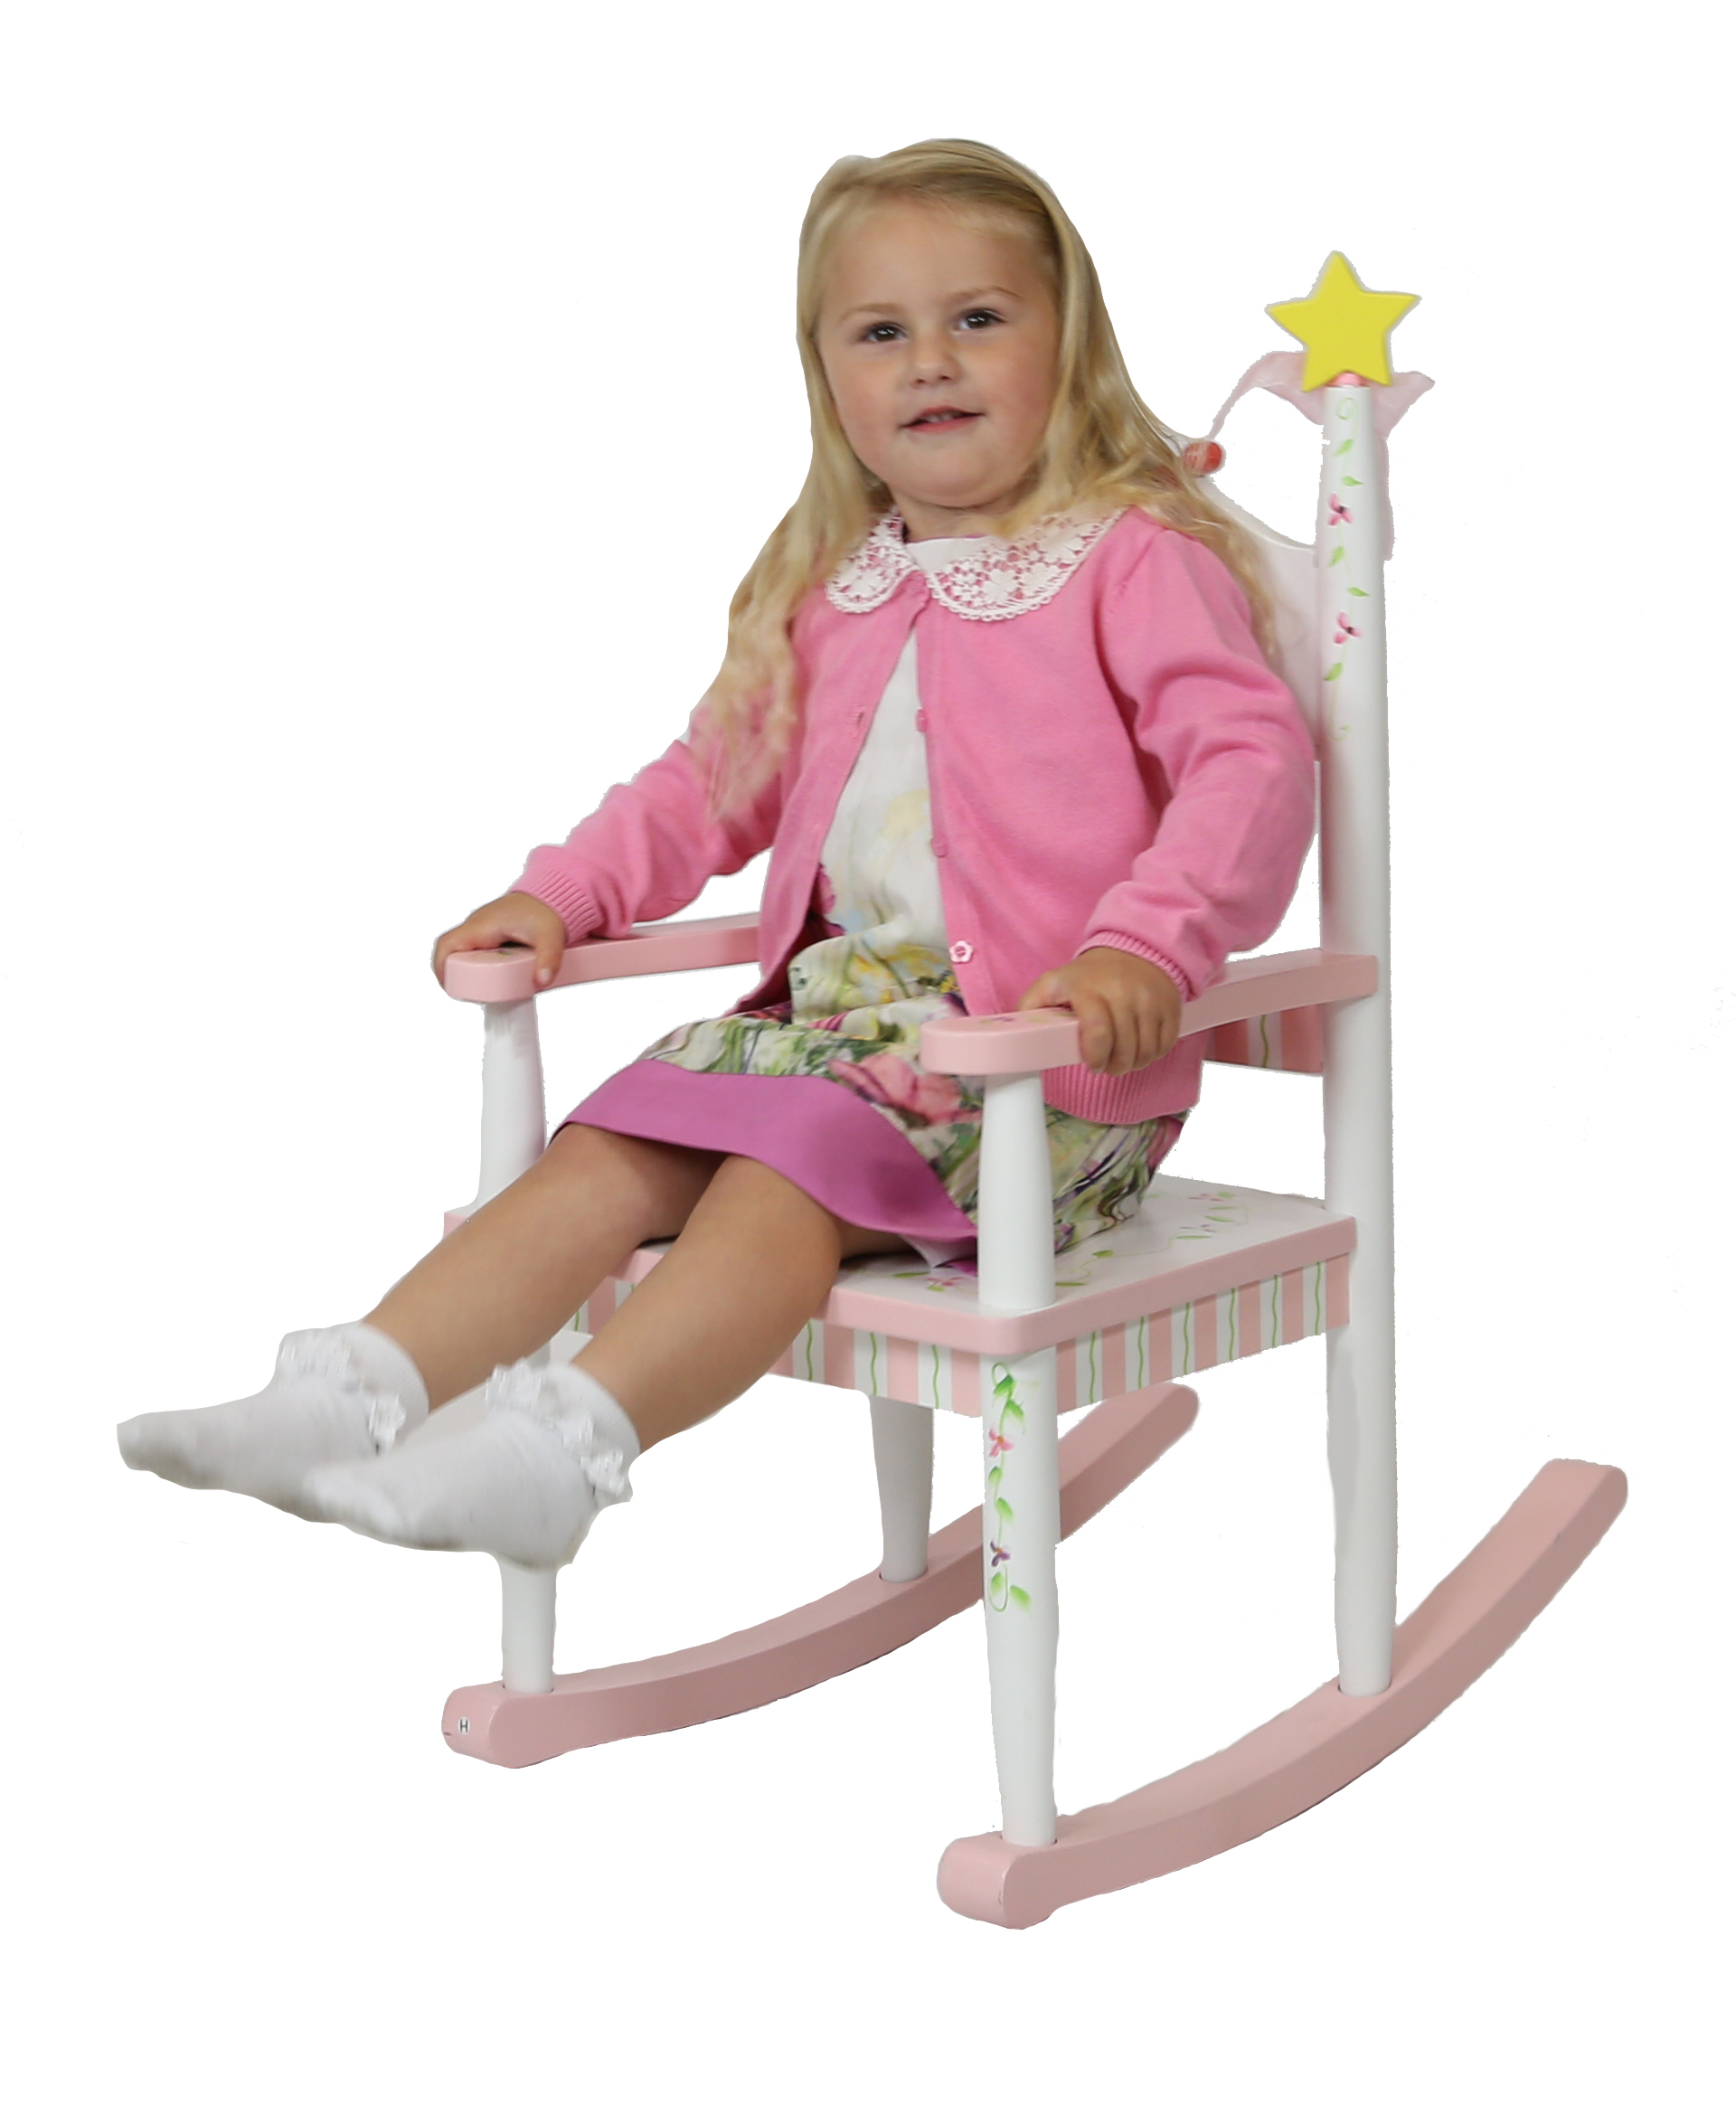 Princess & Frog Rocking Chair by Teamson